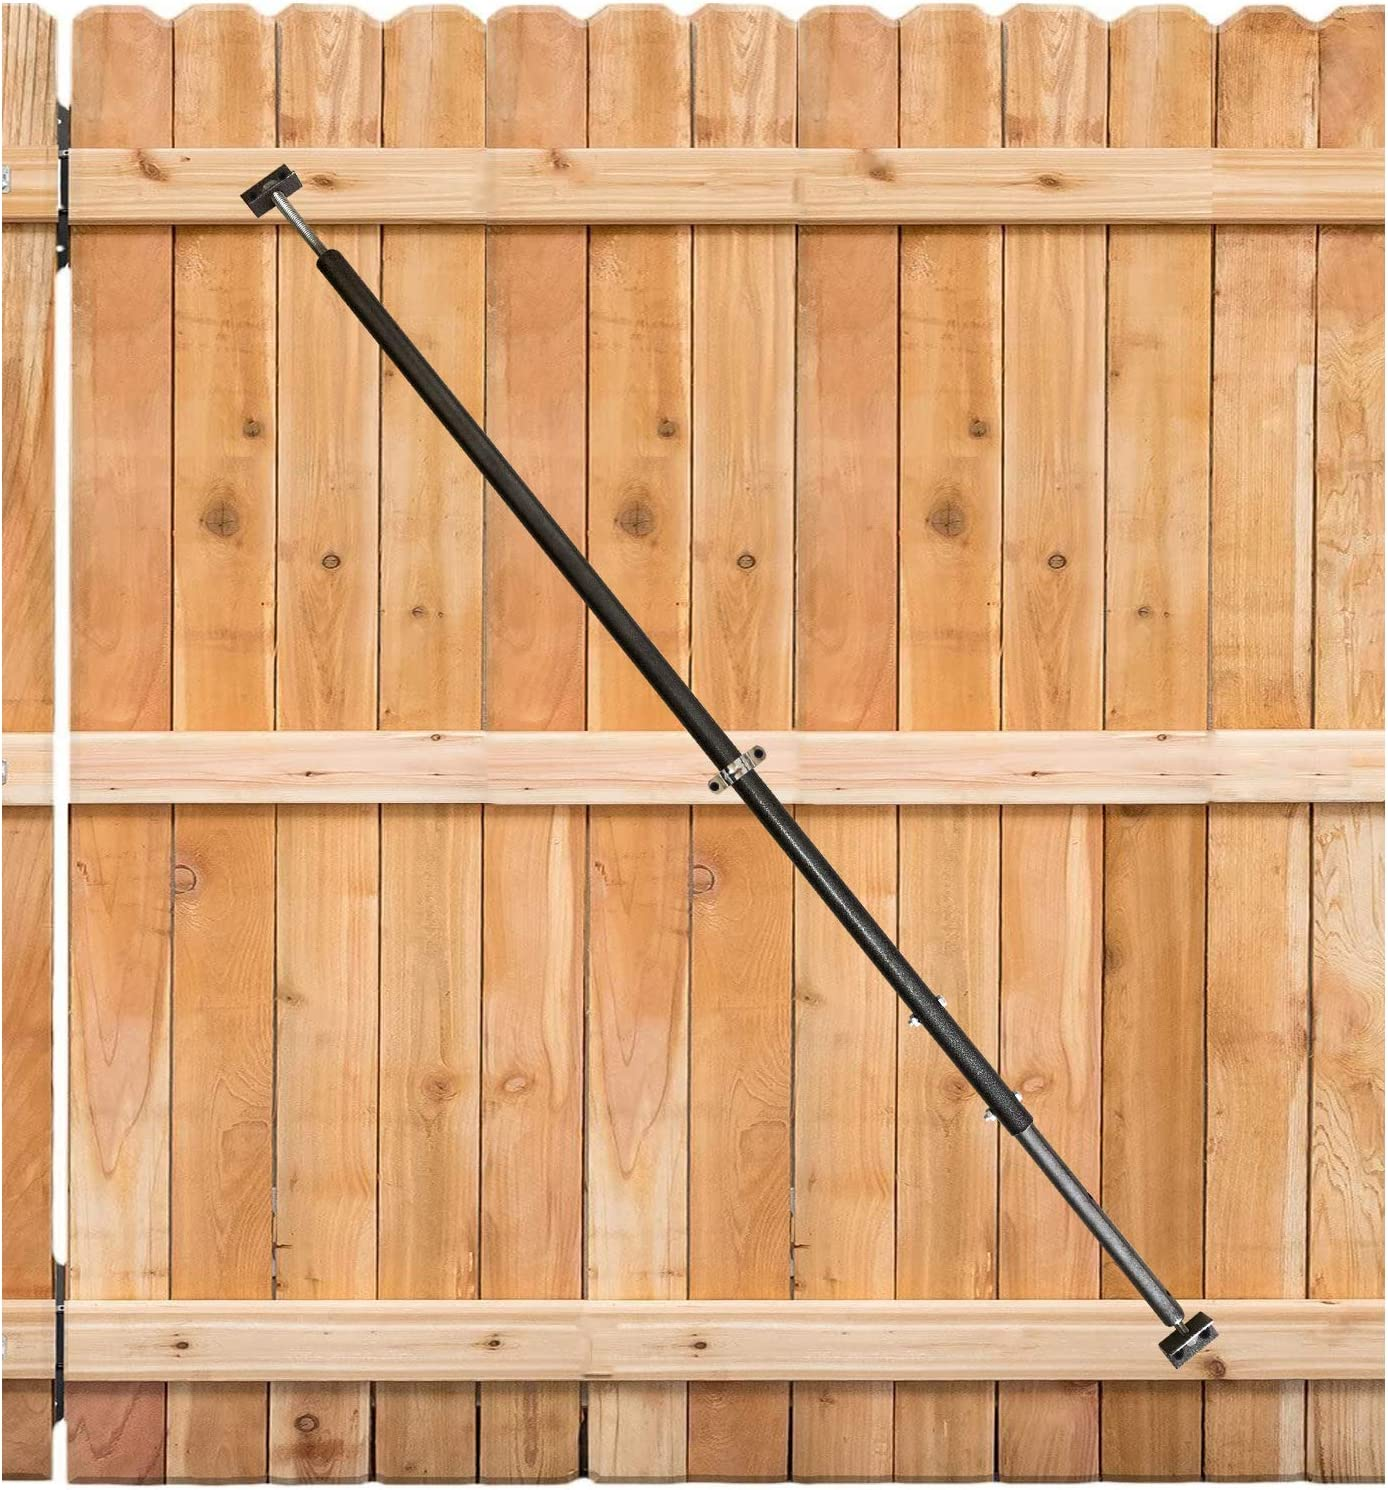 HANDYGO Telescopic Adjustable Steel Gate Brace – Extends to 6 Feet - Anti Sag Gate Kit for Outdoor Yard Wooden Fence Gates